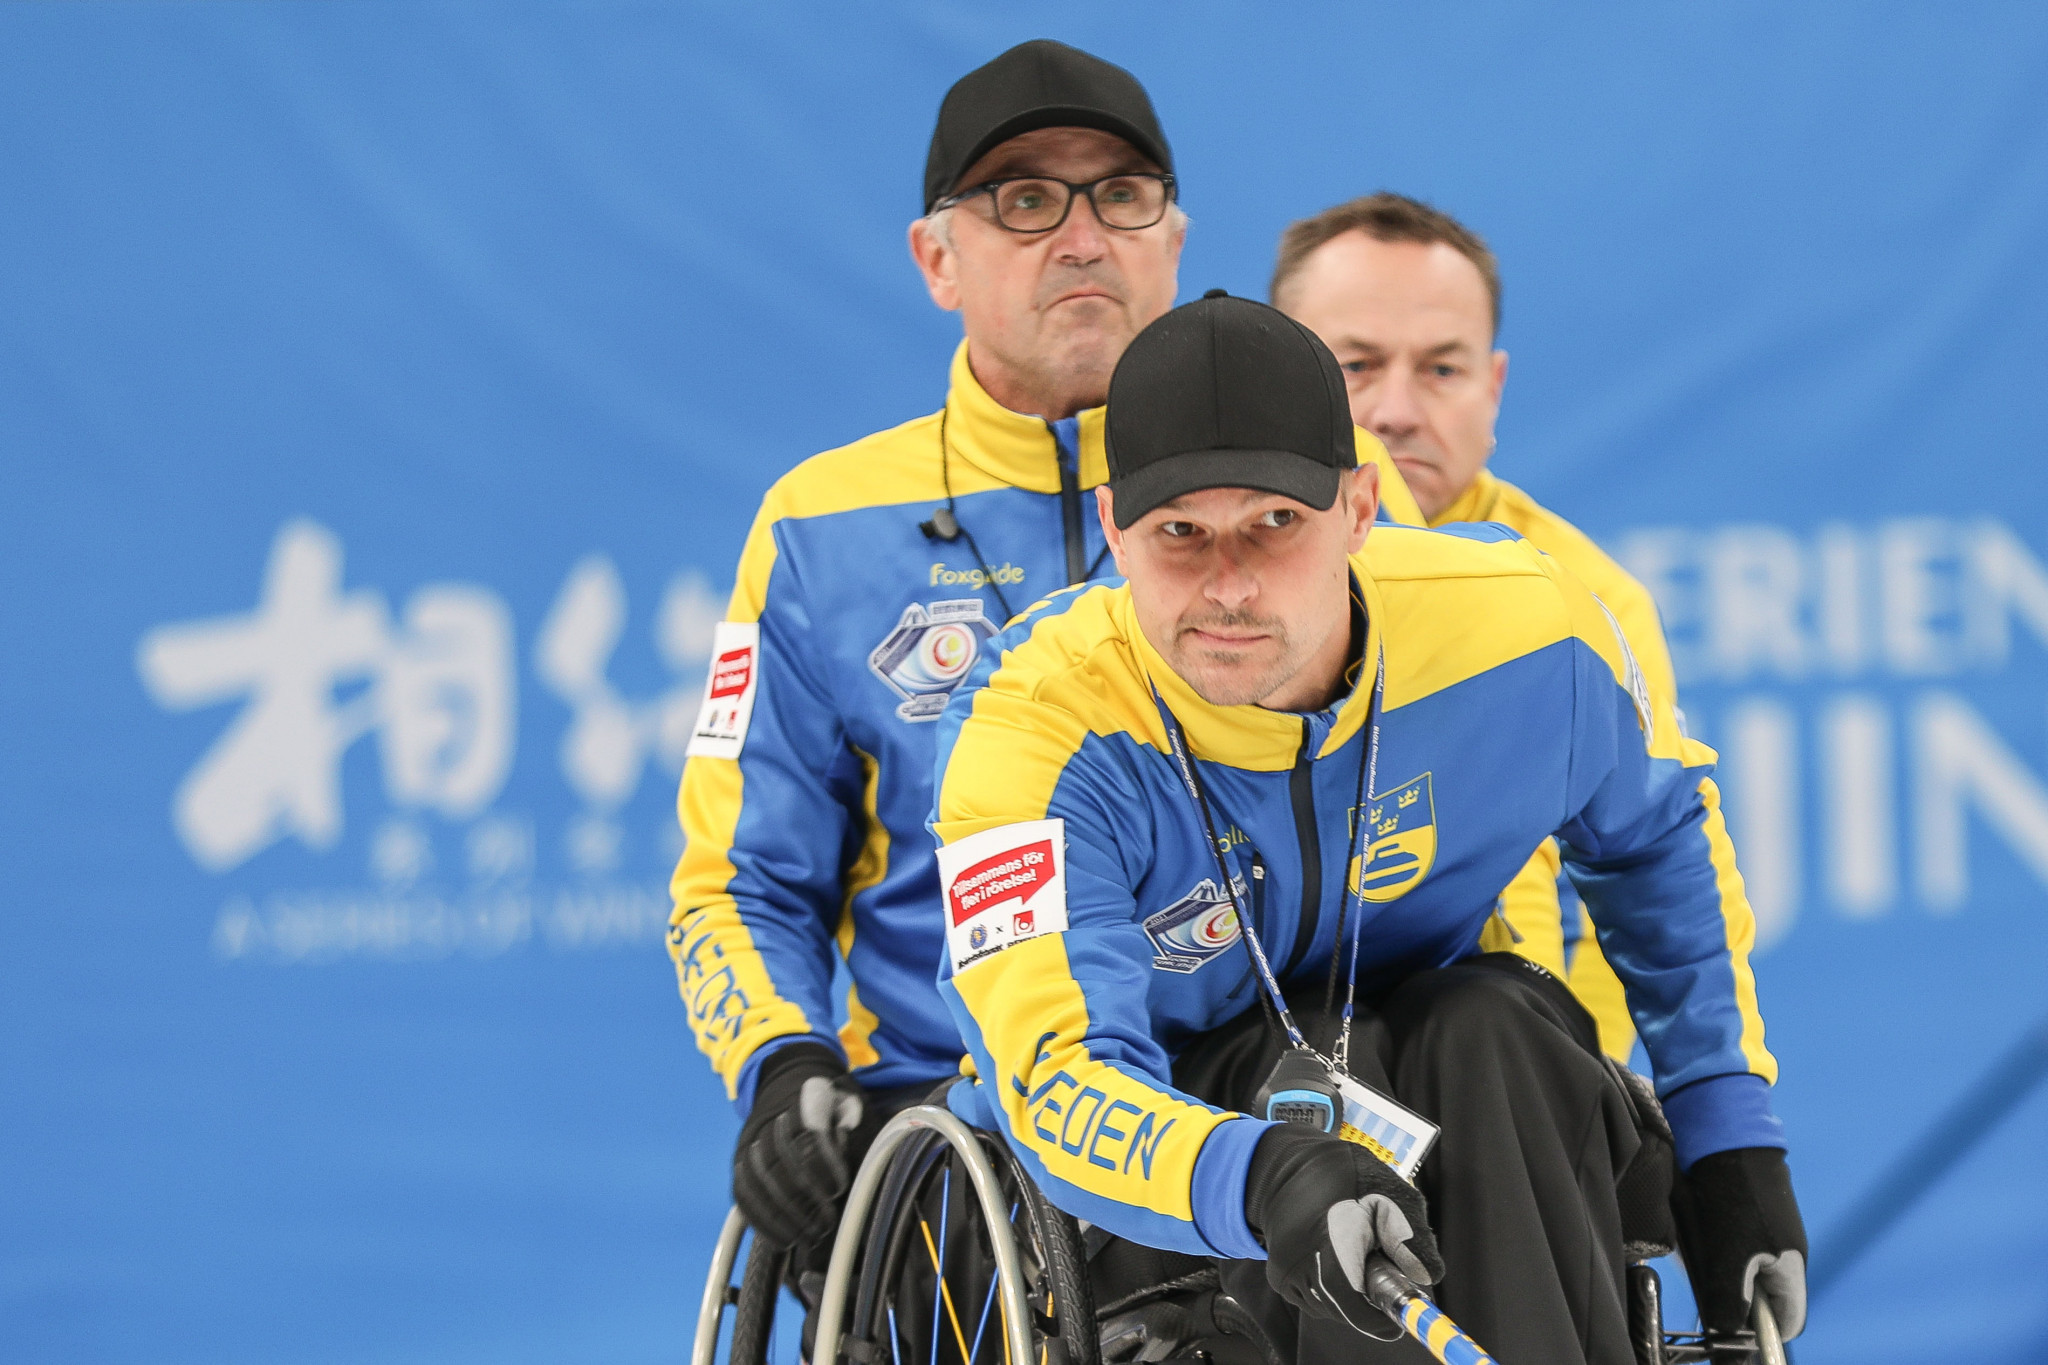 Scotland edge out China to create three-way tie in first at World Wheelchair Curling Championship